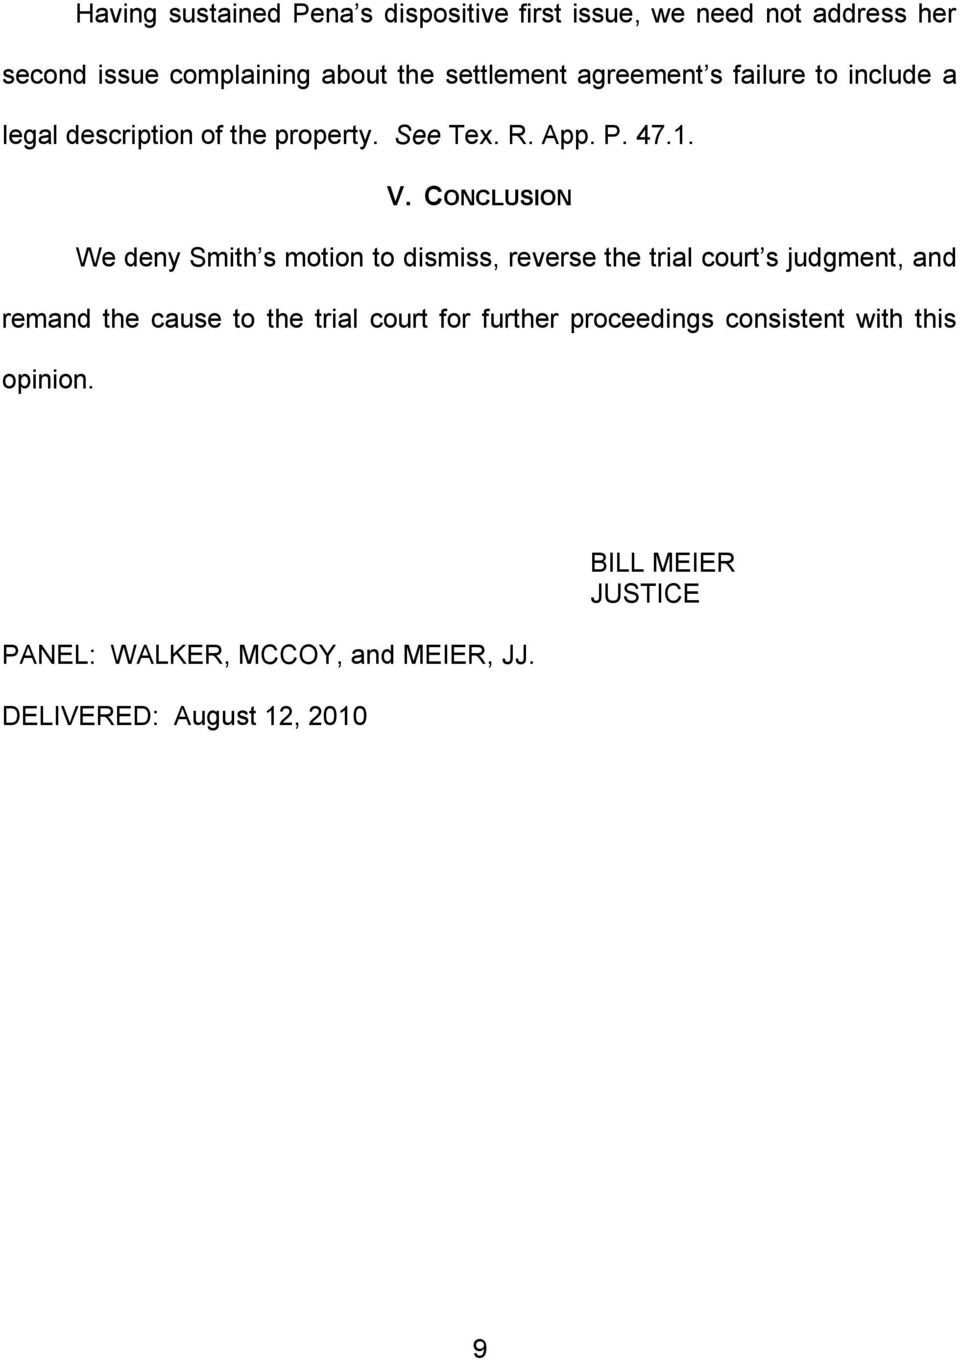 CONCLUSION We deny Smith s motion to dismiss, reverse the trial court s judgment, and remand the cause to the trial